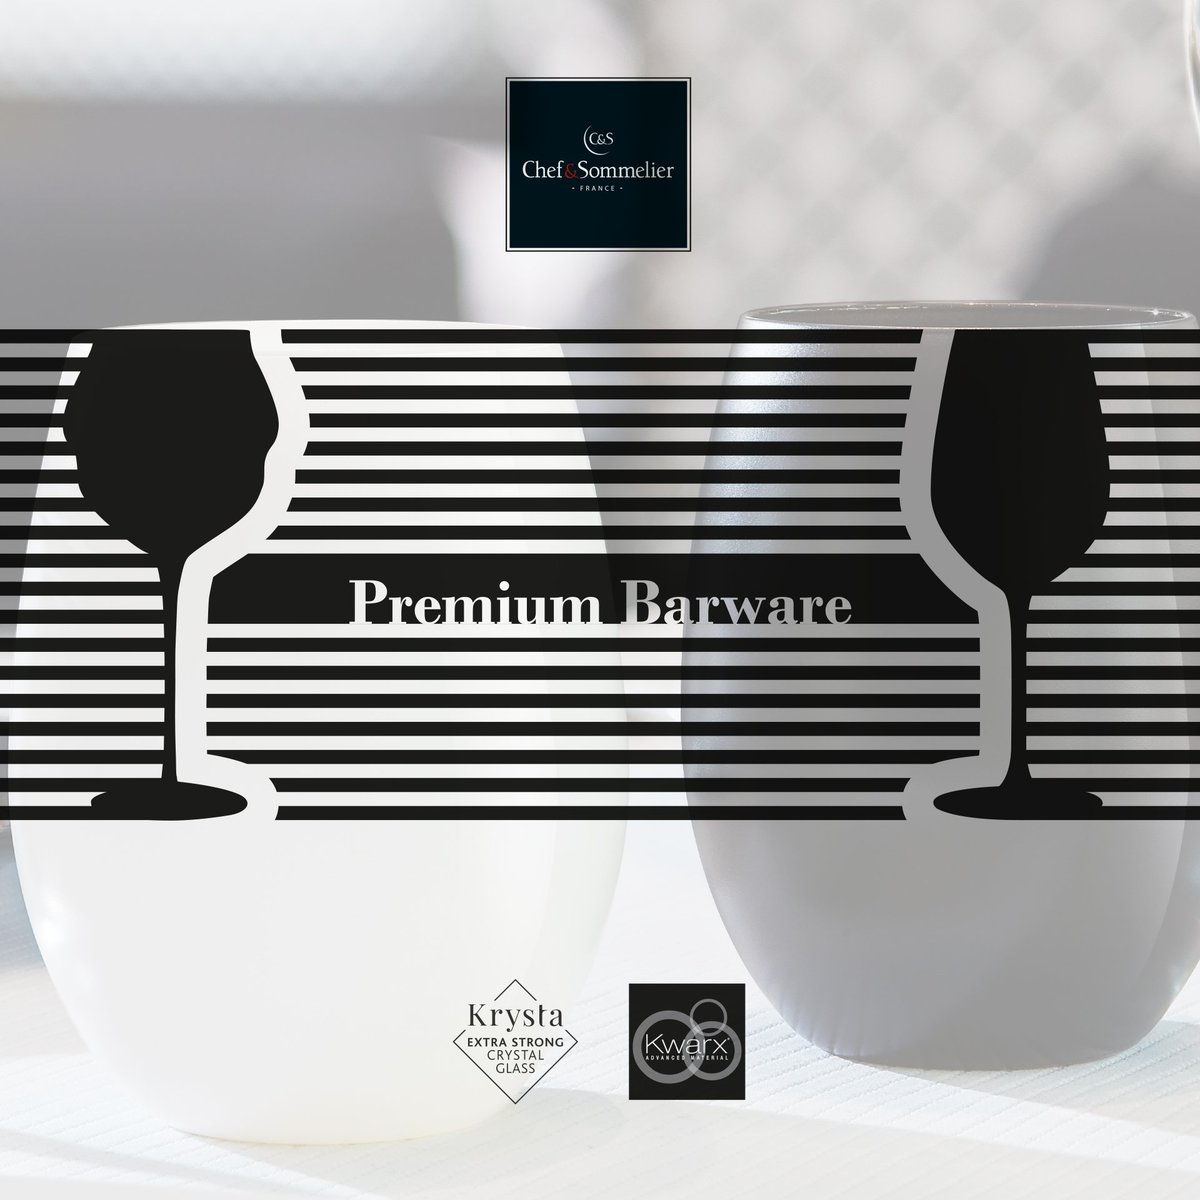 Arc Tableware UK on Twitter \ It\u0027s the #AutumnEquinox \u0026 it\u0027s a beautiful day! 25% off our #Premium #Barware from #ChefSommelier //t.co/lyz6HO269L ... & Arc Tableware UK on Twitter: \